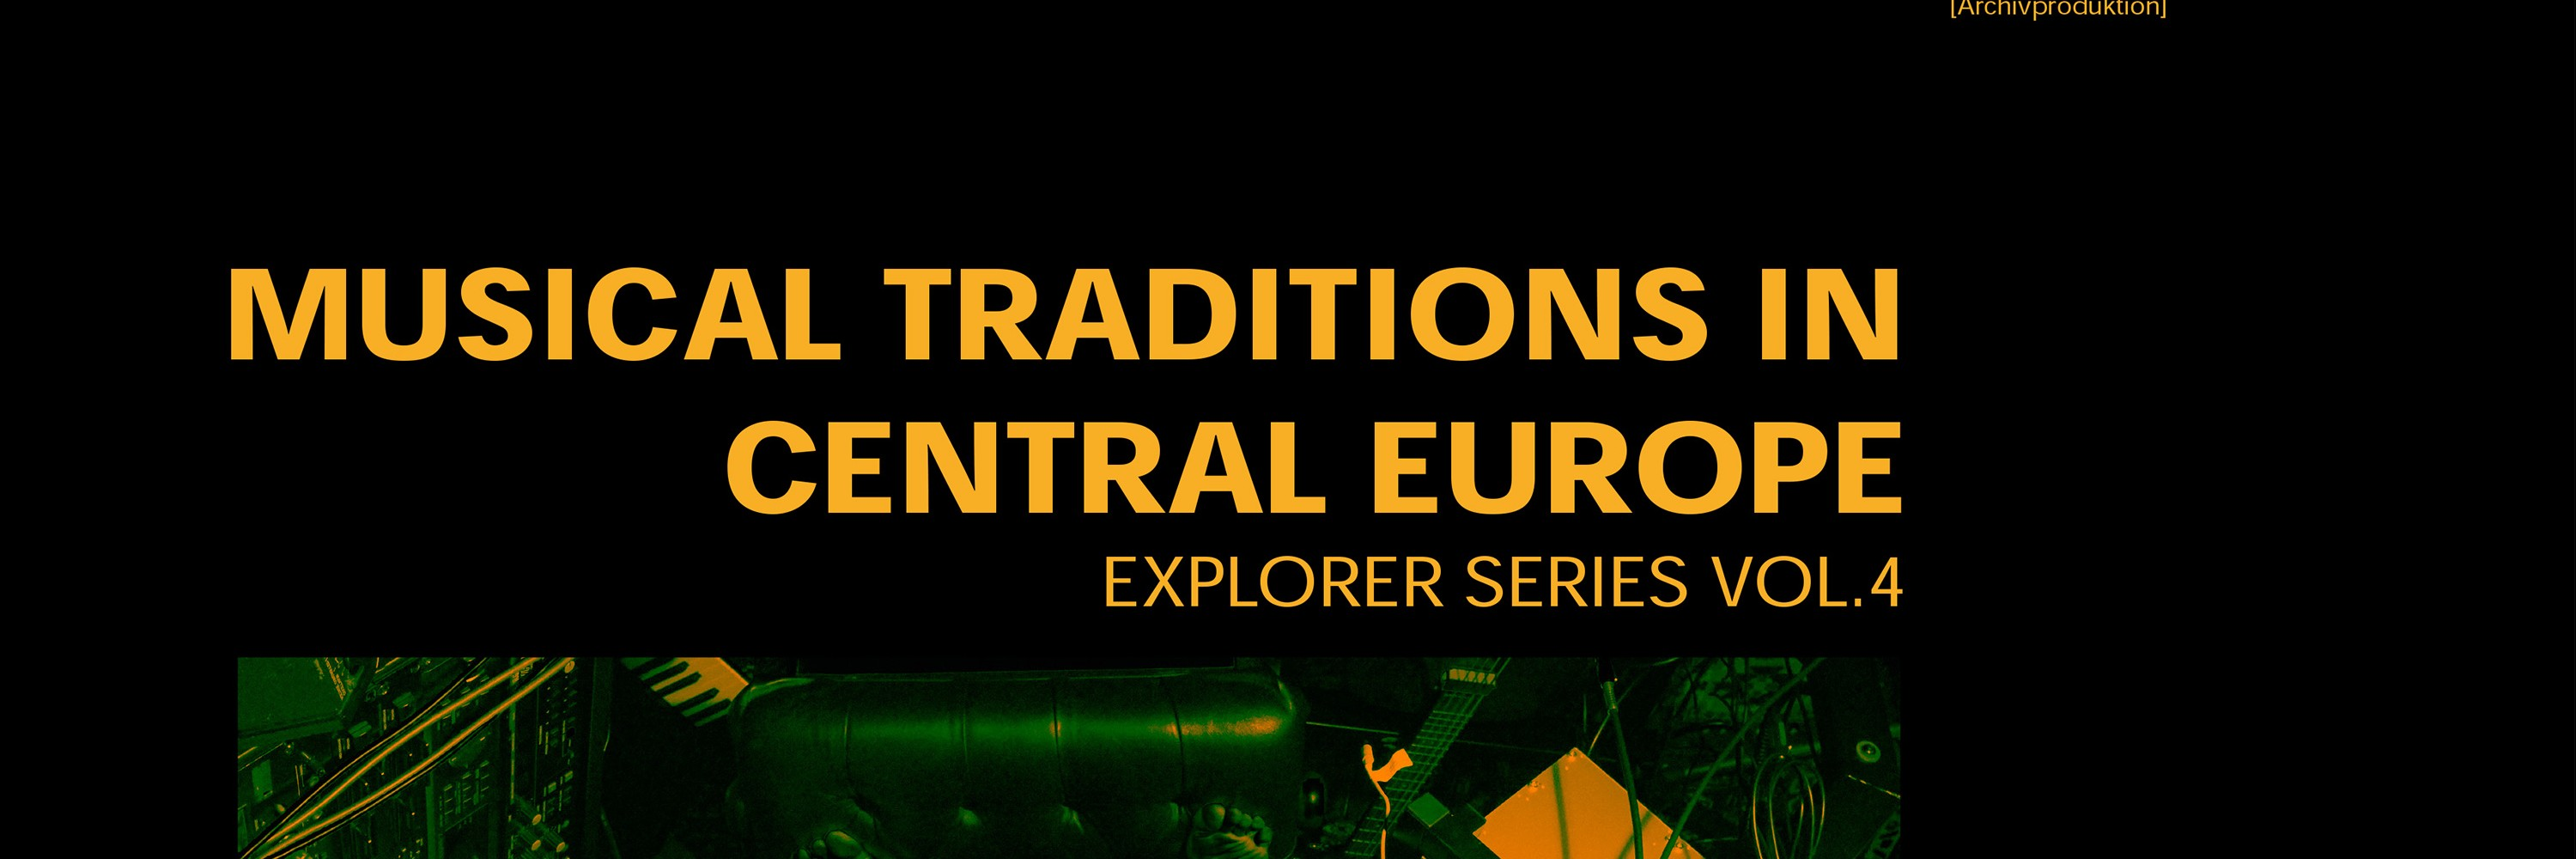 Musical Traditions in Central Europe: Explorer Series Vol. 4